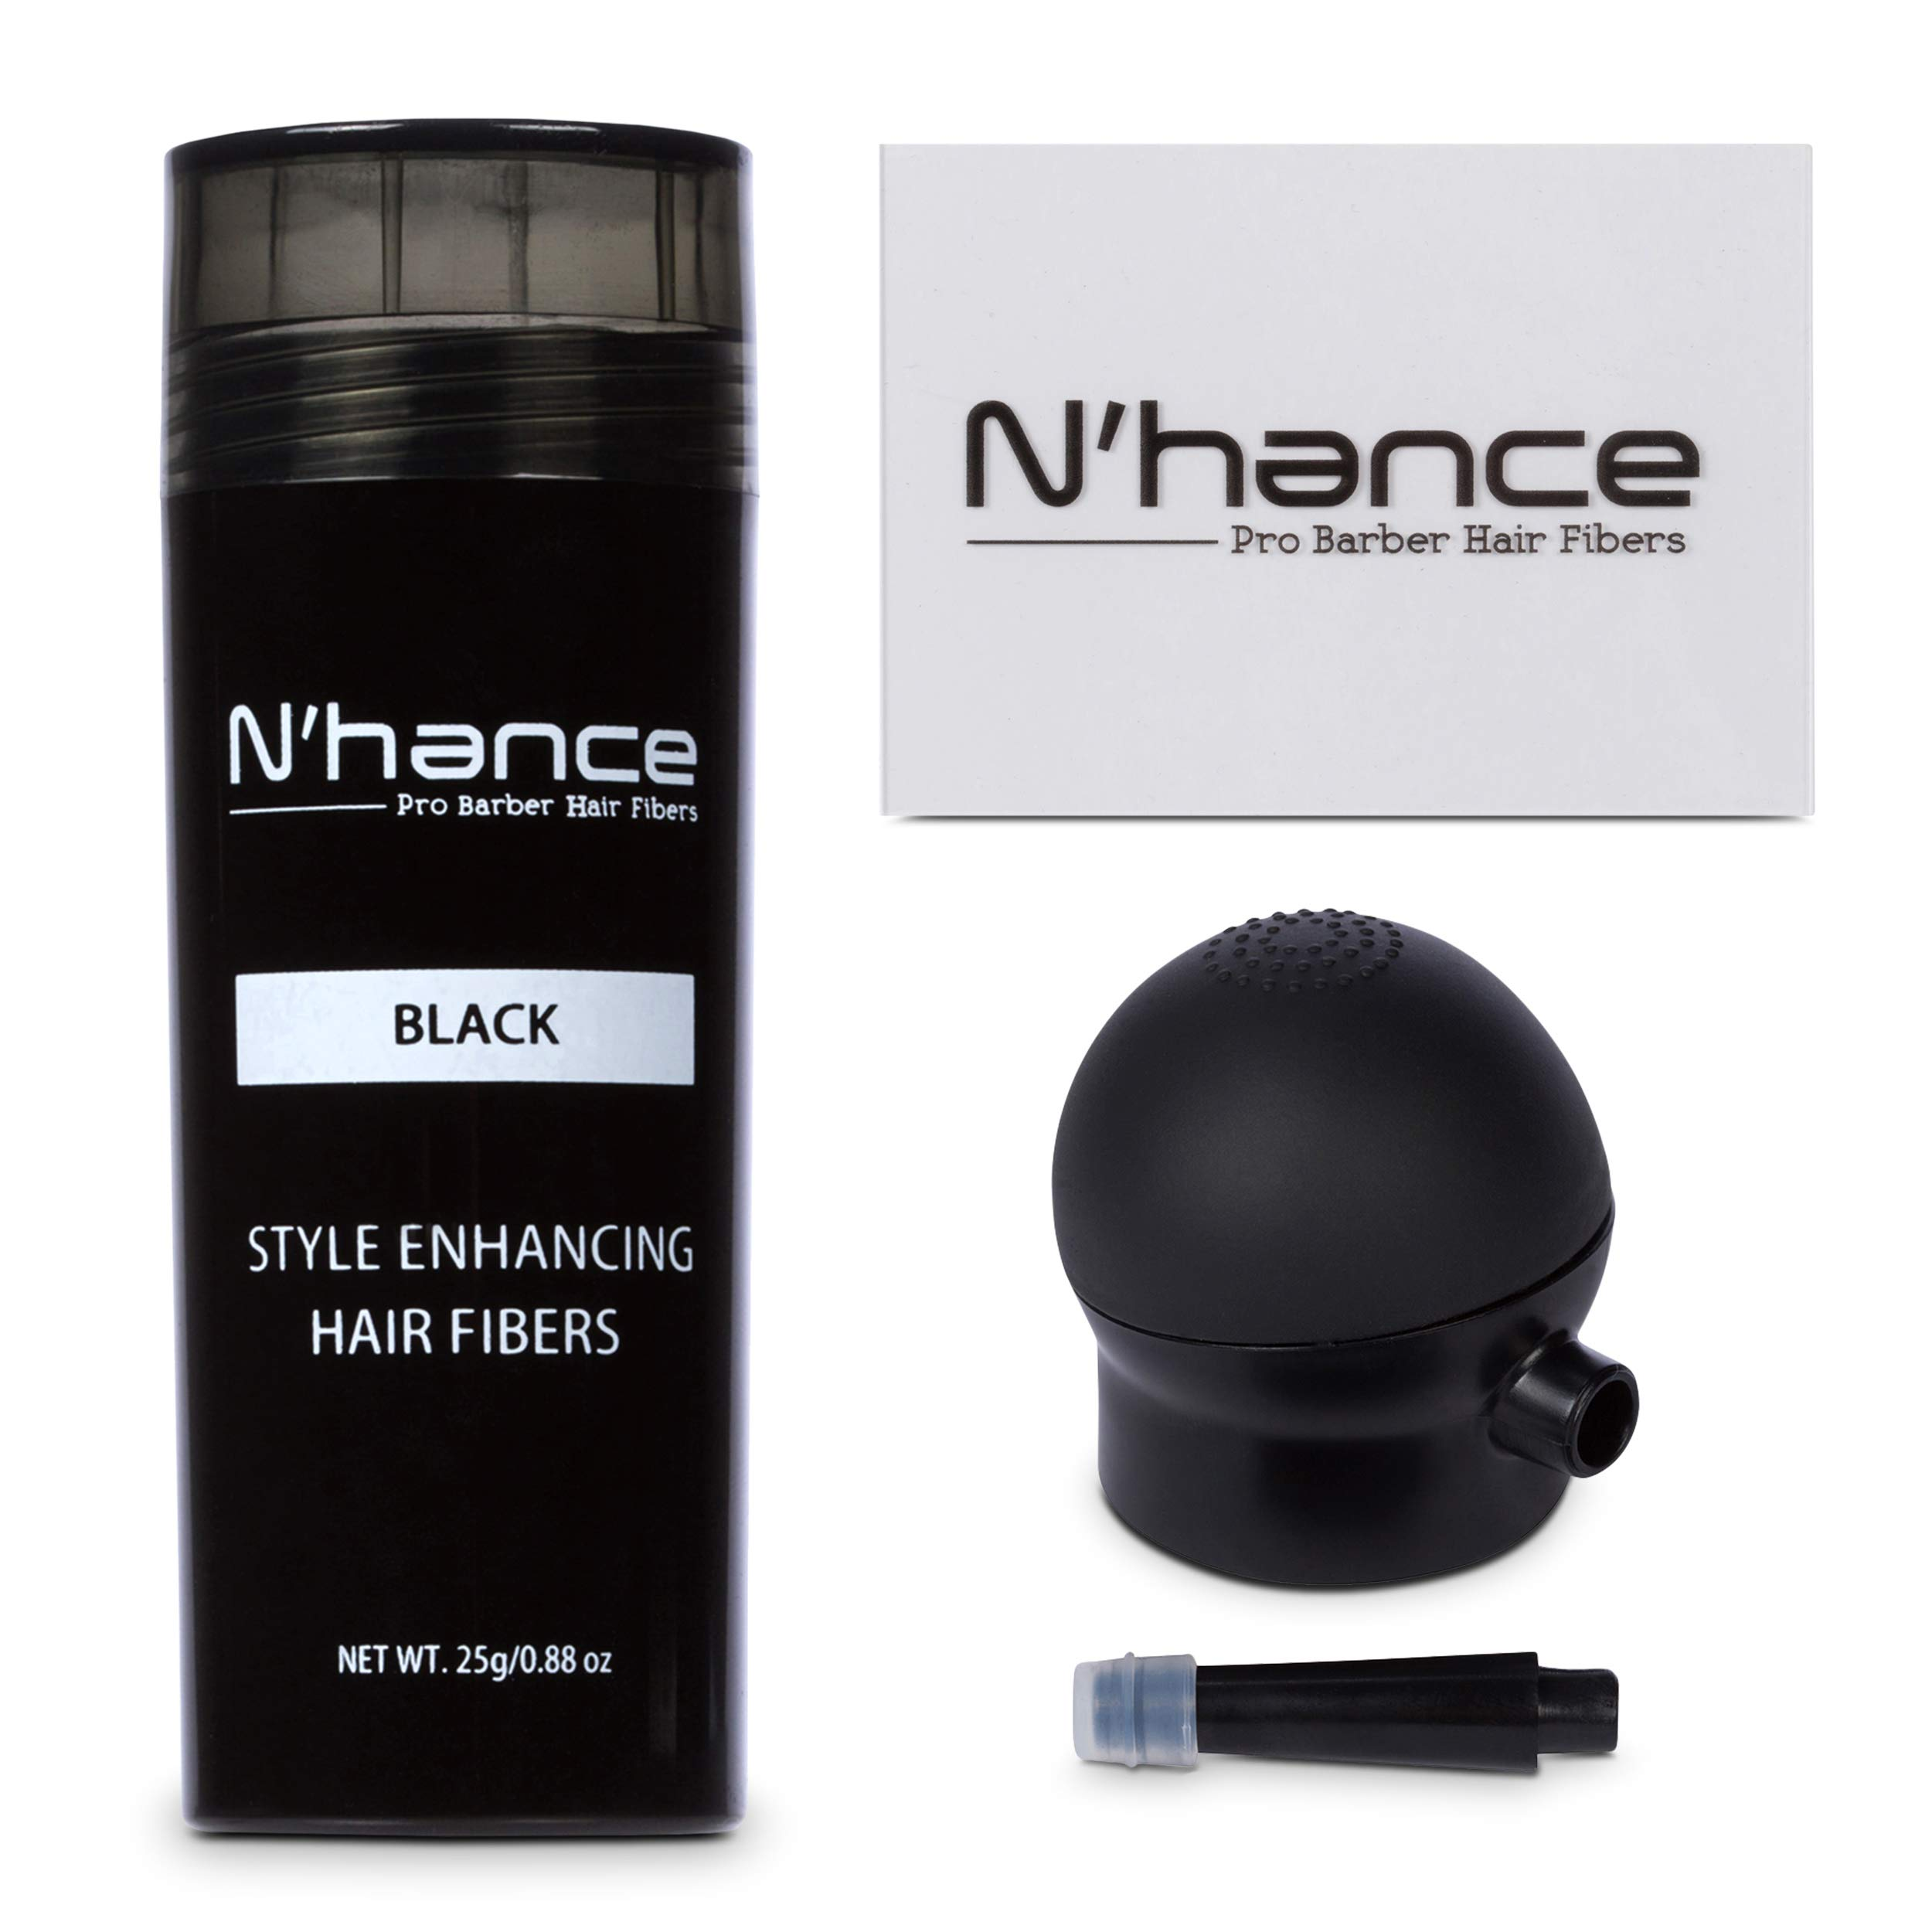 N'Hance Pro Barber Hair Fibers, Applicator + Applicator Card (Black)